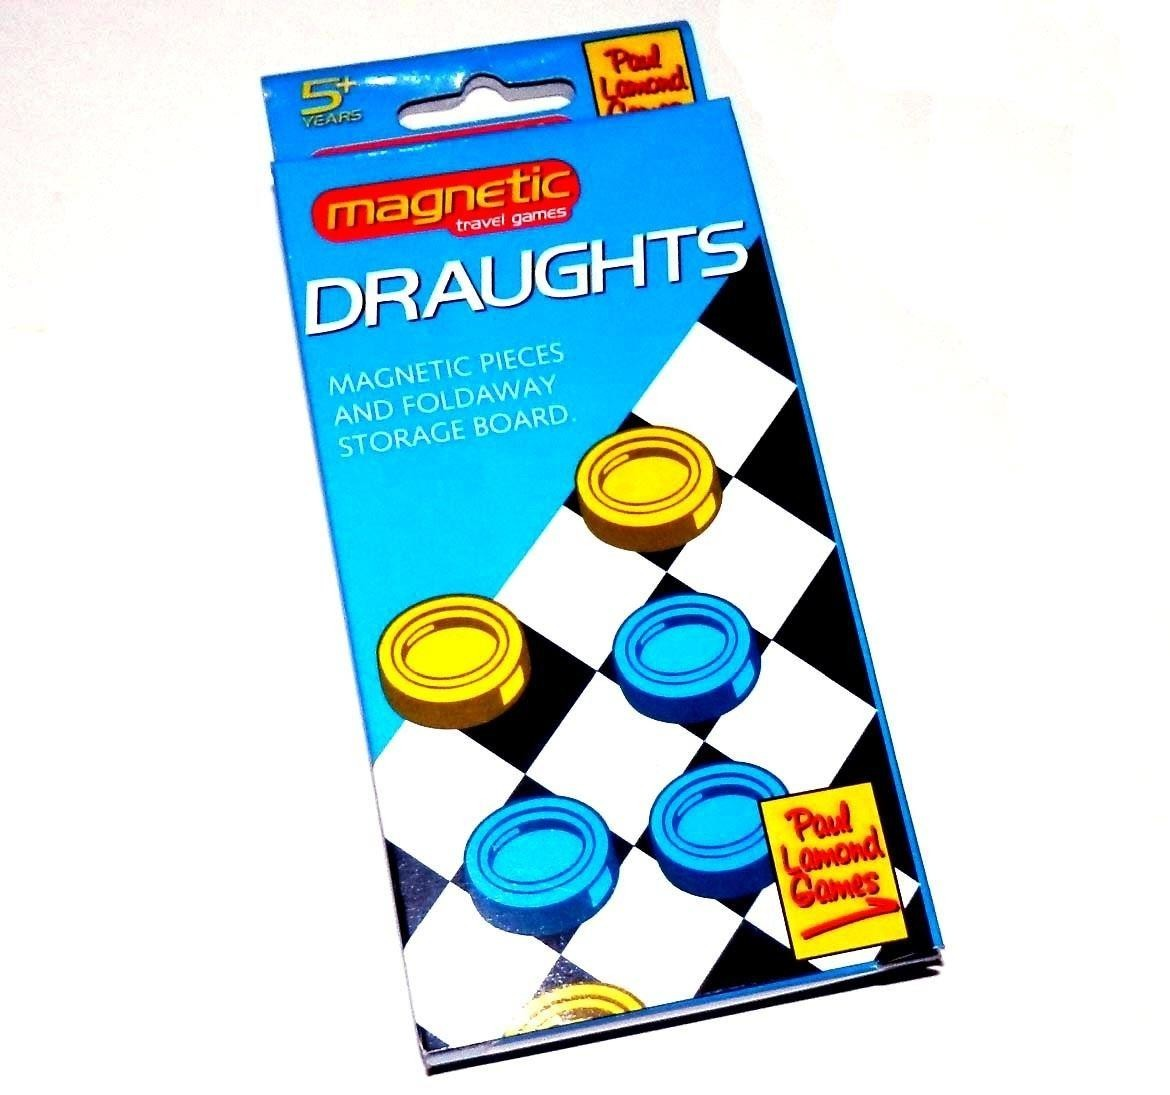 Paul Lamond Magnetic Travel Games - Draughts or Snakes and Ladders